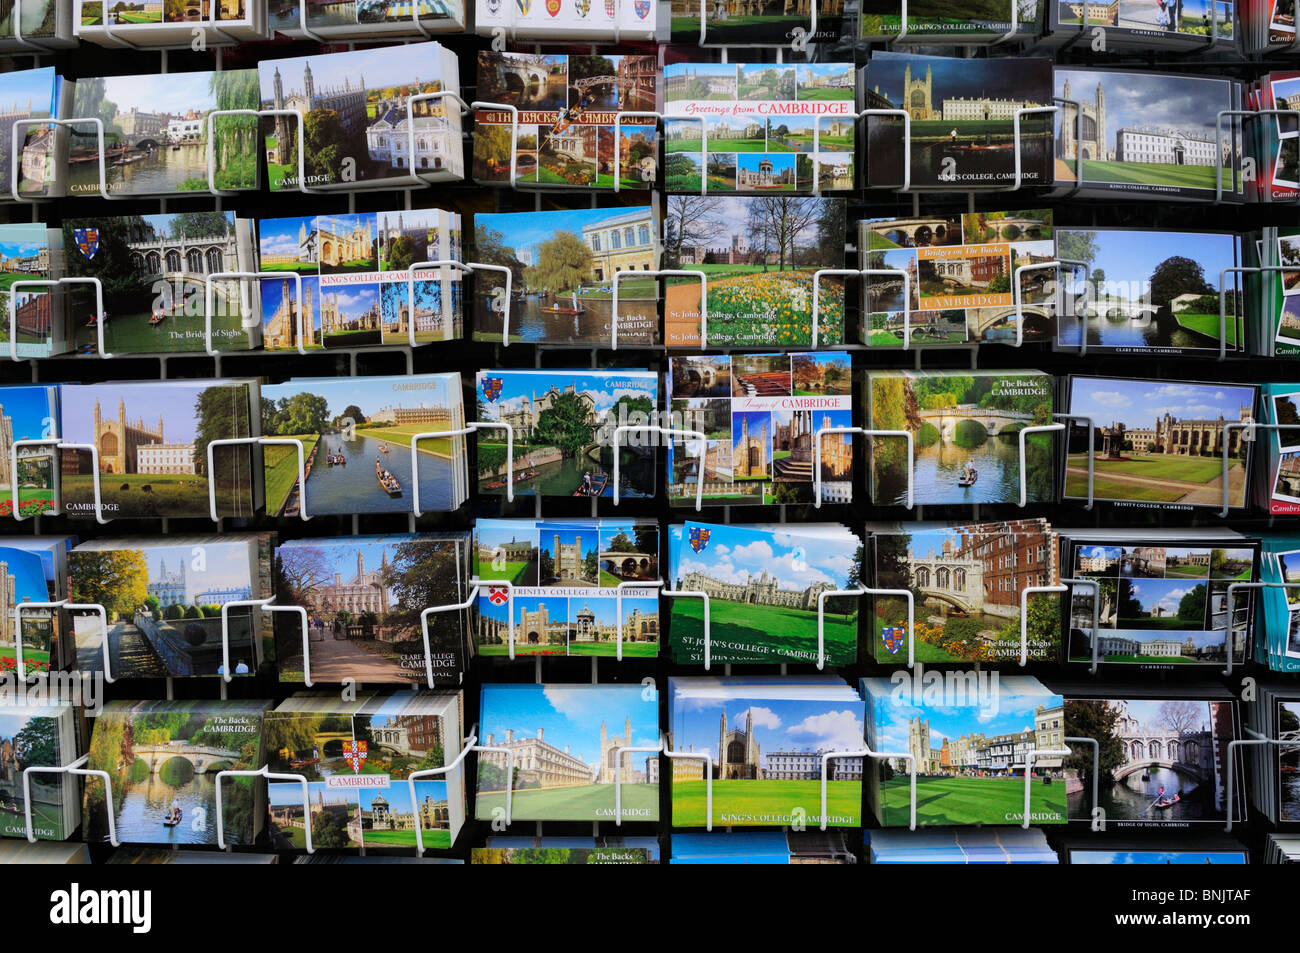 Postcards of Cambridge for Sale, Cambridge, England, UK Stock Photo